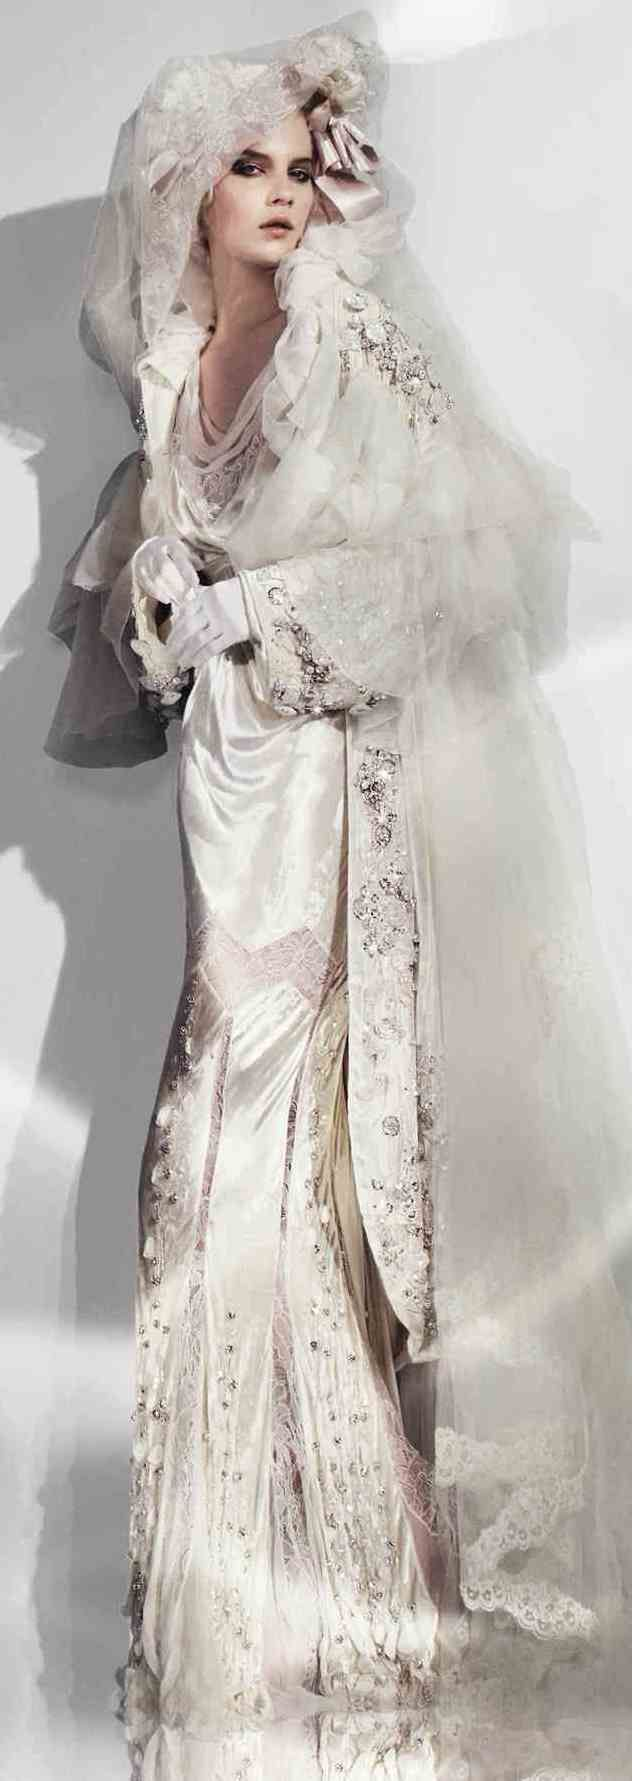 wedding gown by john galliano beautiful dresses gowns